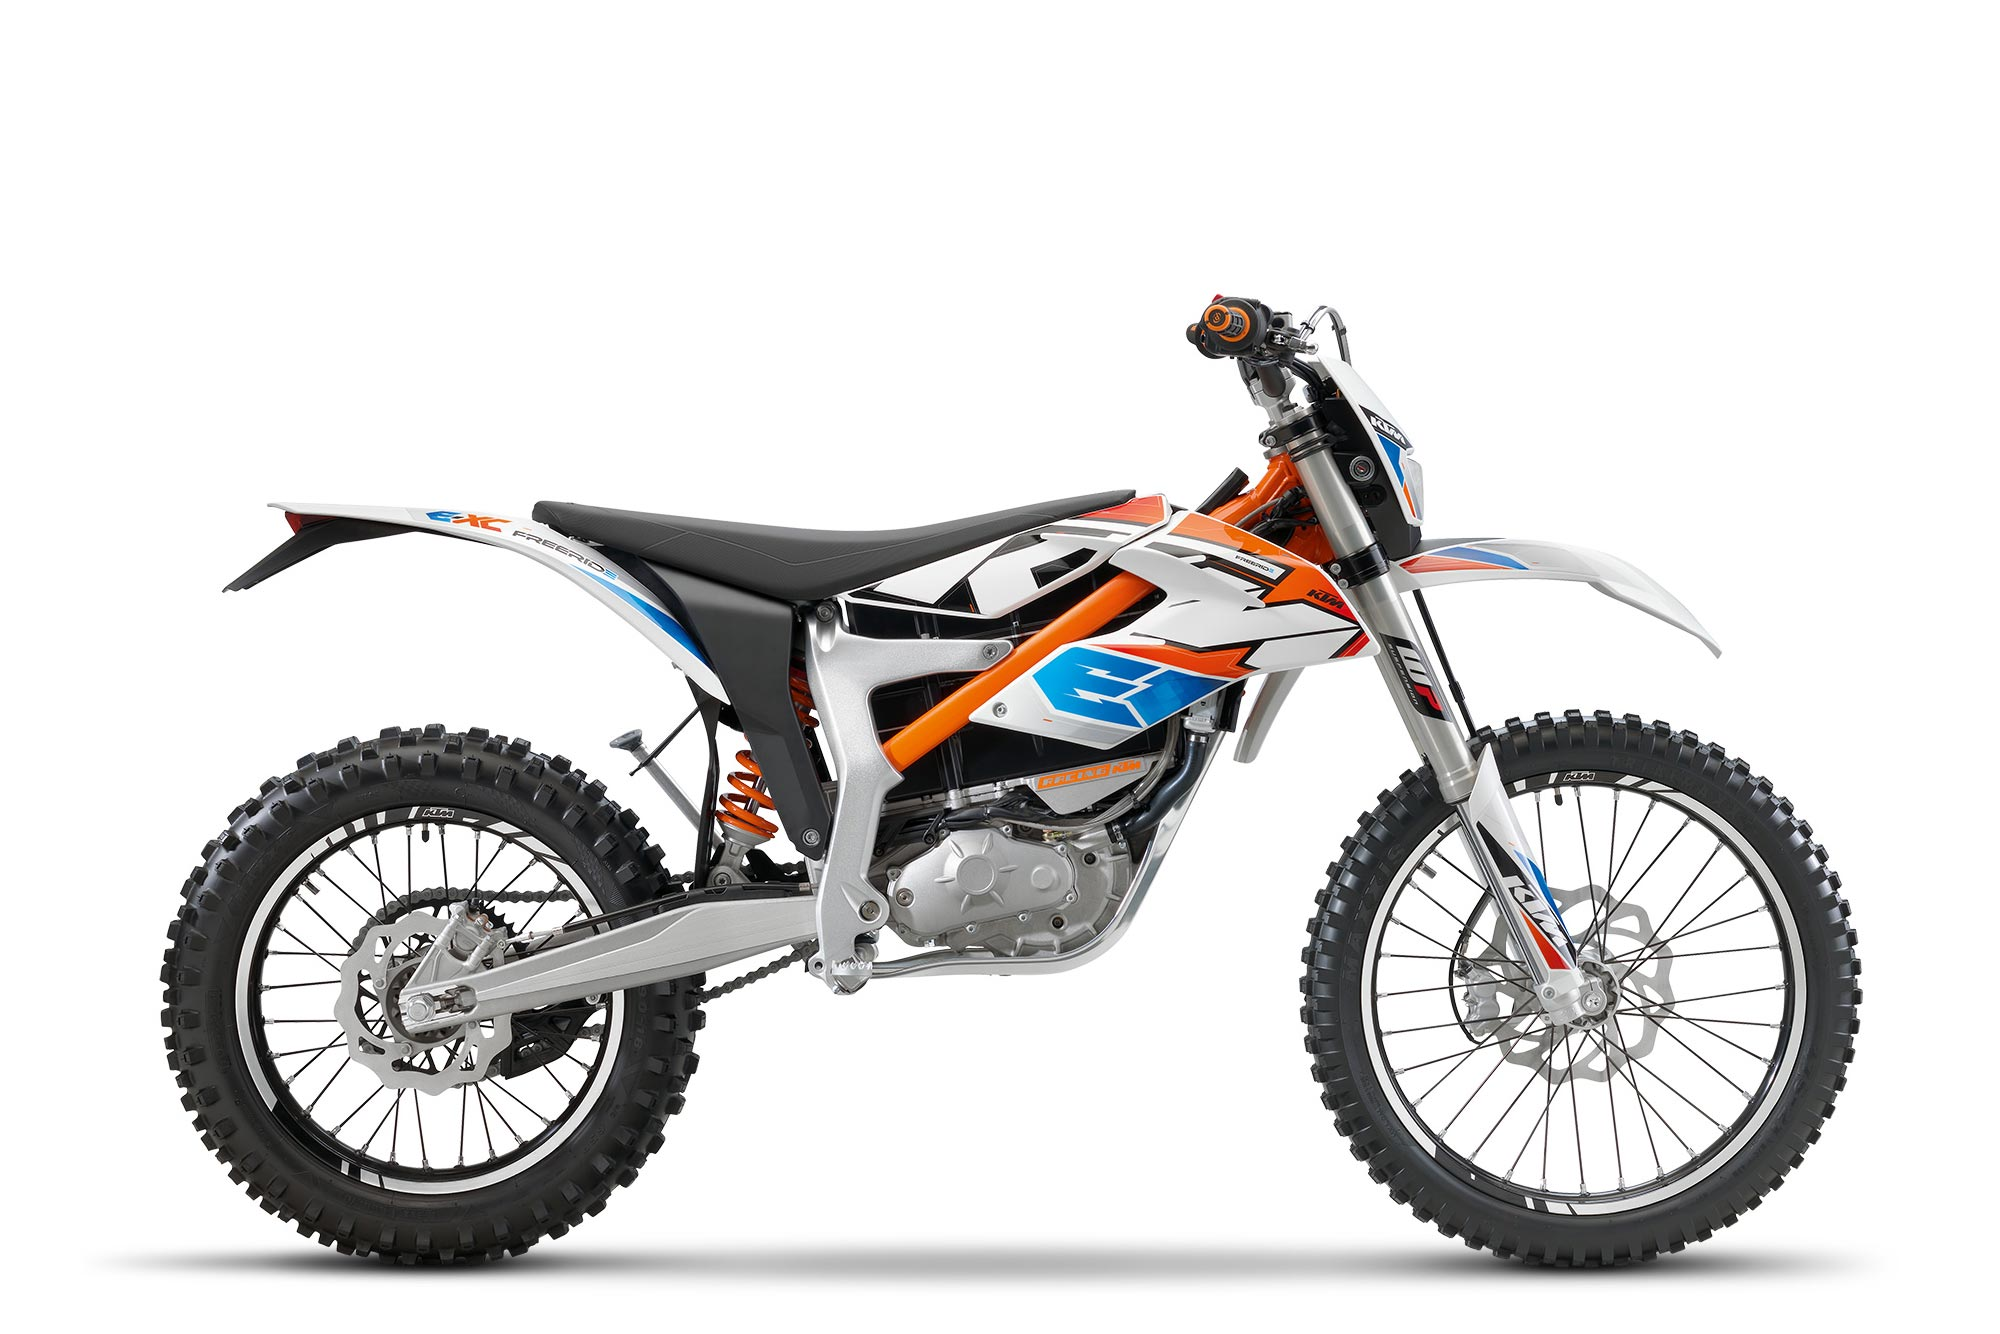 KTM Finally Brings the Freeride E-XC to the USA - Asphalt & Rubber